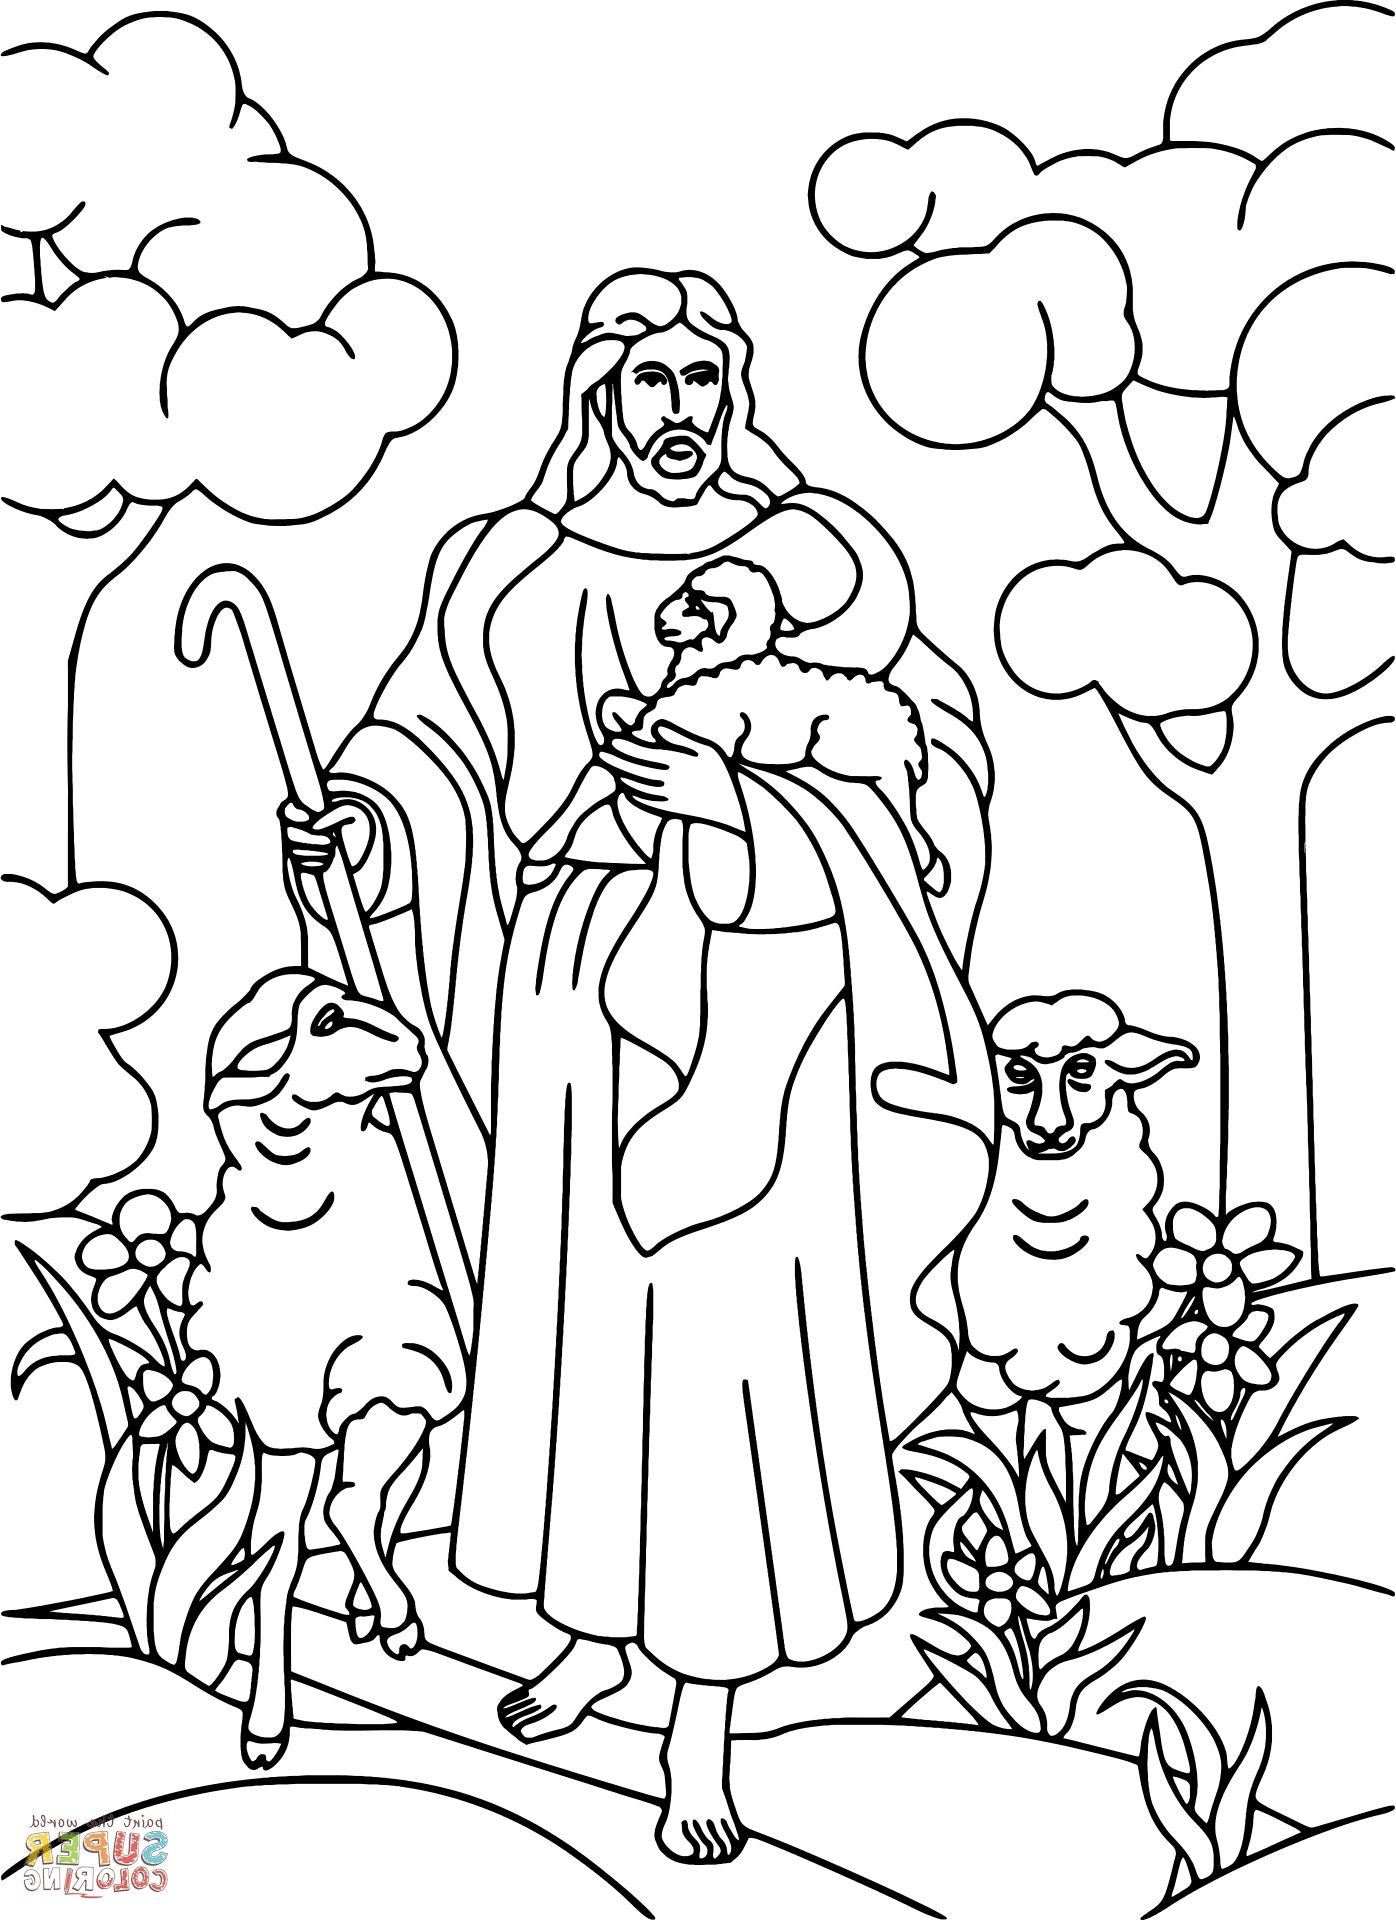 jesus the shepherd coloring pages jesus the good shepard coloring page jesus coloring shepherd coloring jesus the pages